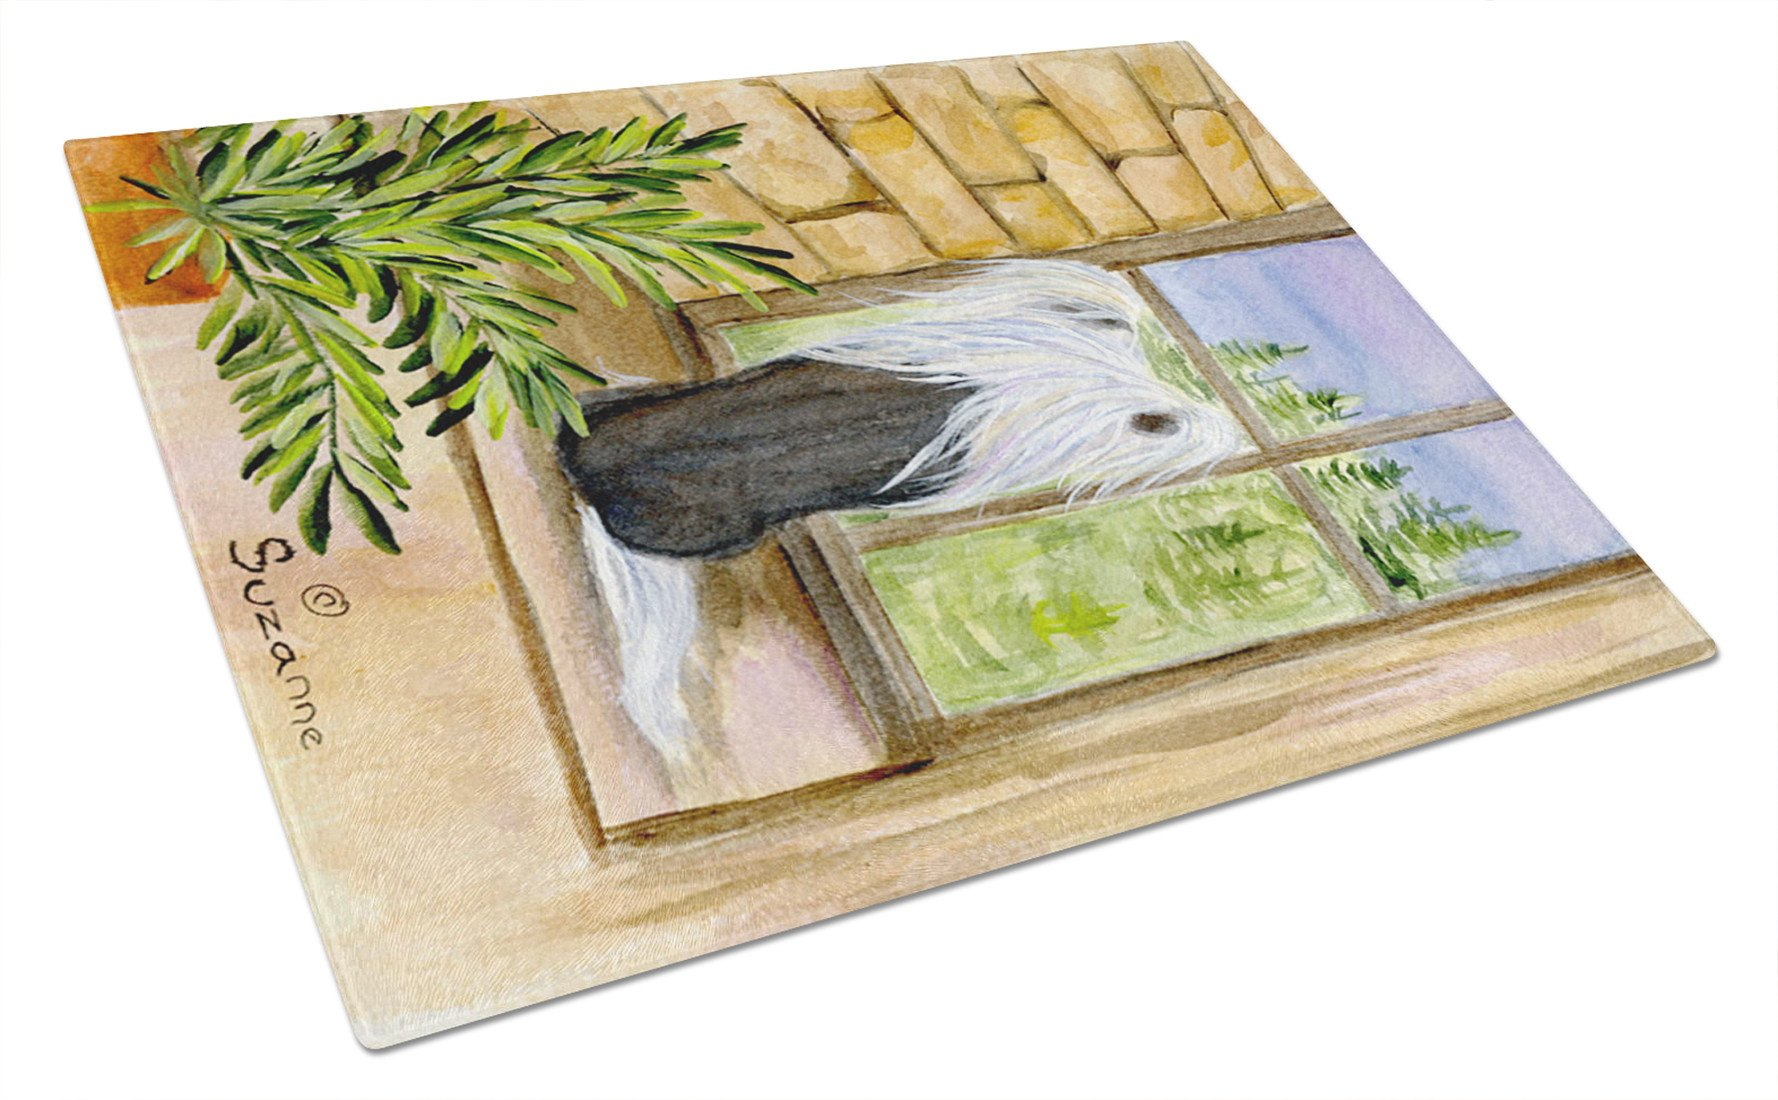 Chinese Crested Glass Cutting Board Large by Caroline's Treasures